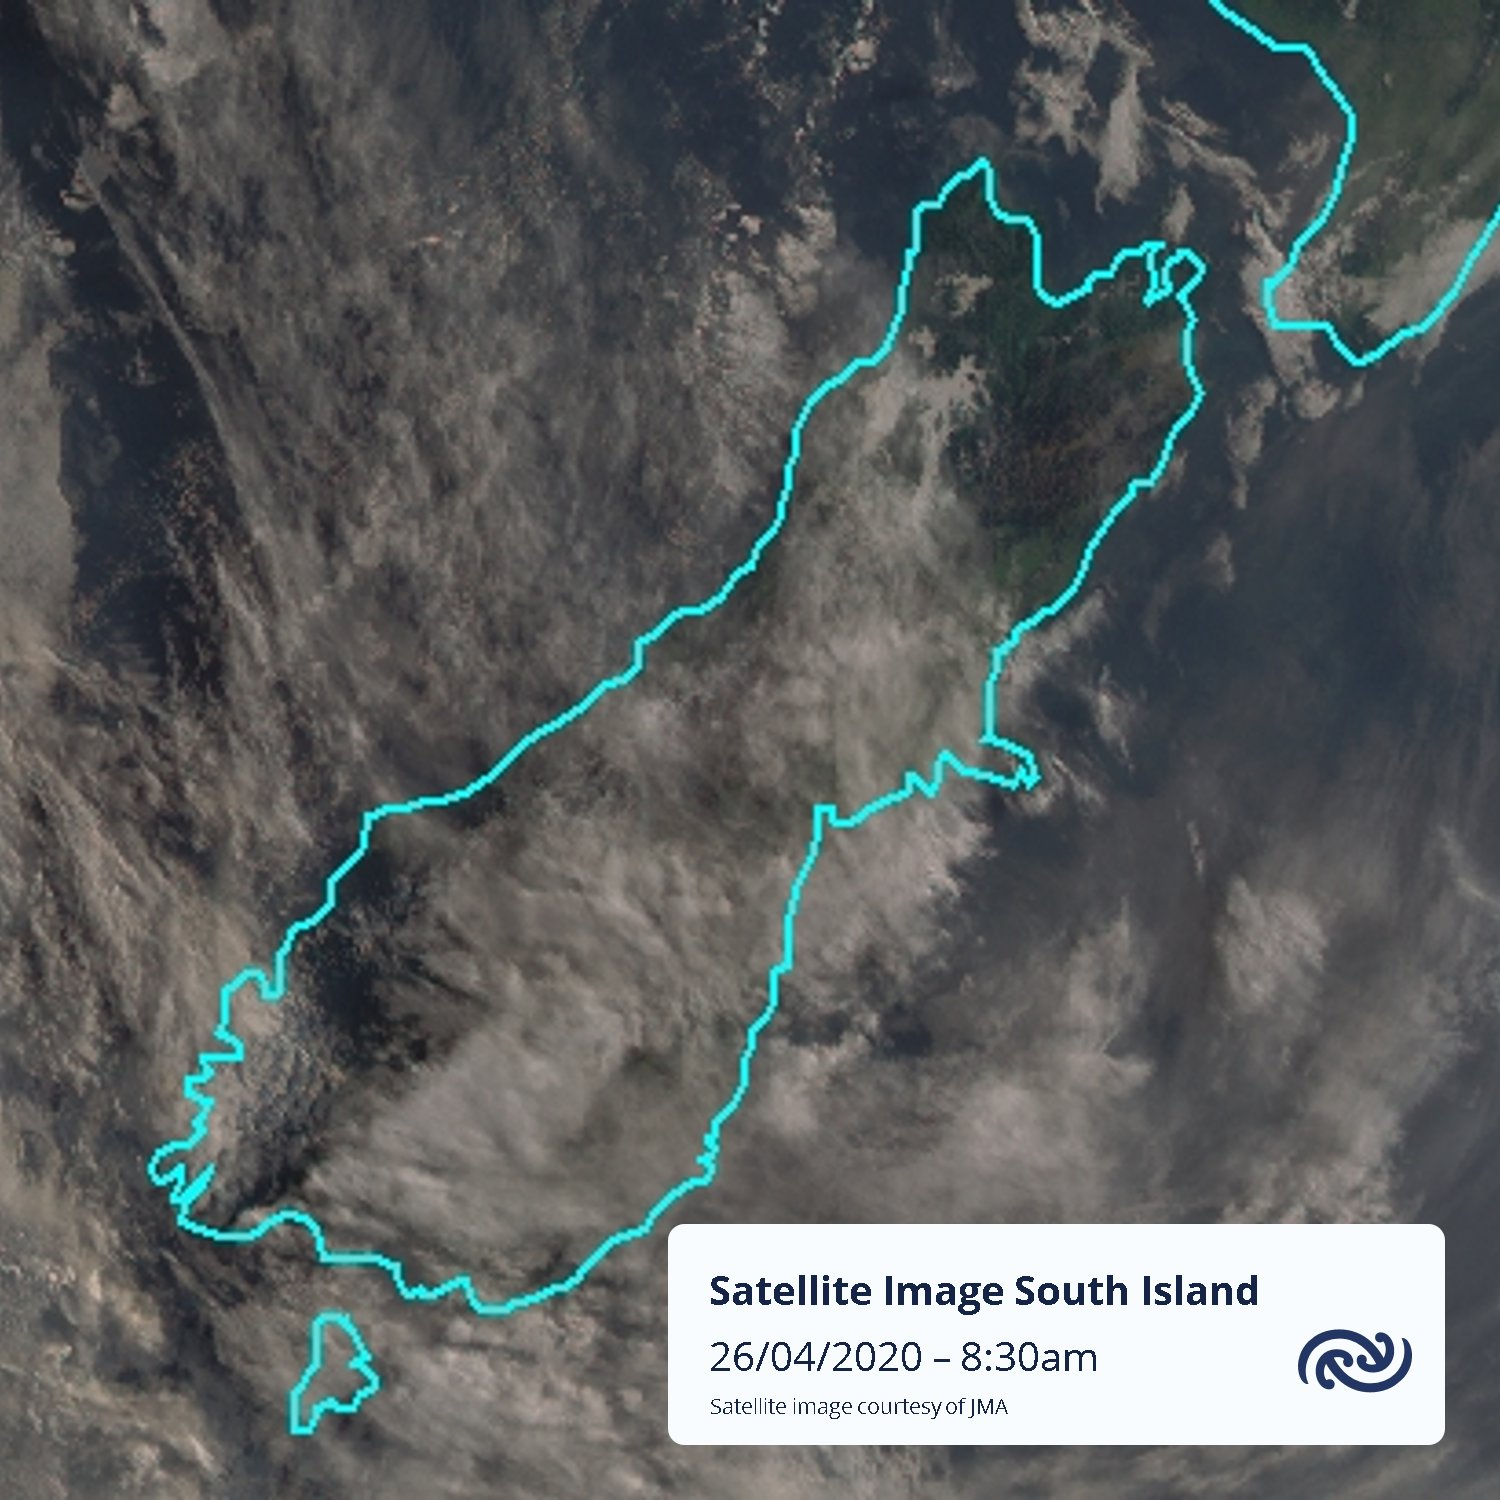 High cloud will be the theme of the day for the South Island, with parts of Canterbury, Otago and Southland getting thicker wave cloud later today as strong northwesterlies push over the Southern Alps. Check out bit.ly/metservicenz for more details ^MM https://t.co/vXdnN8ihJx